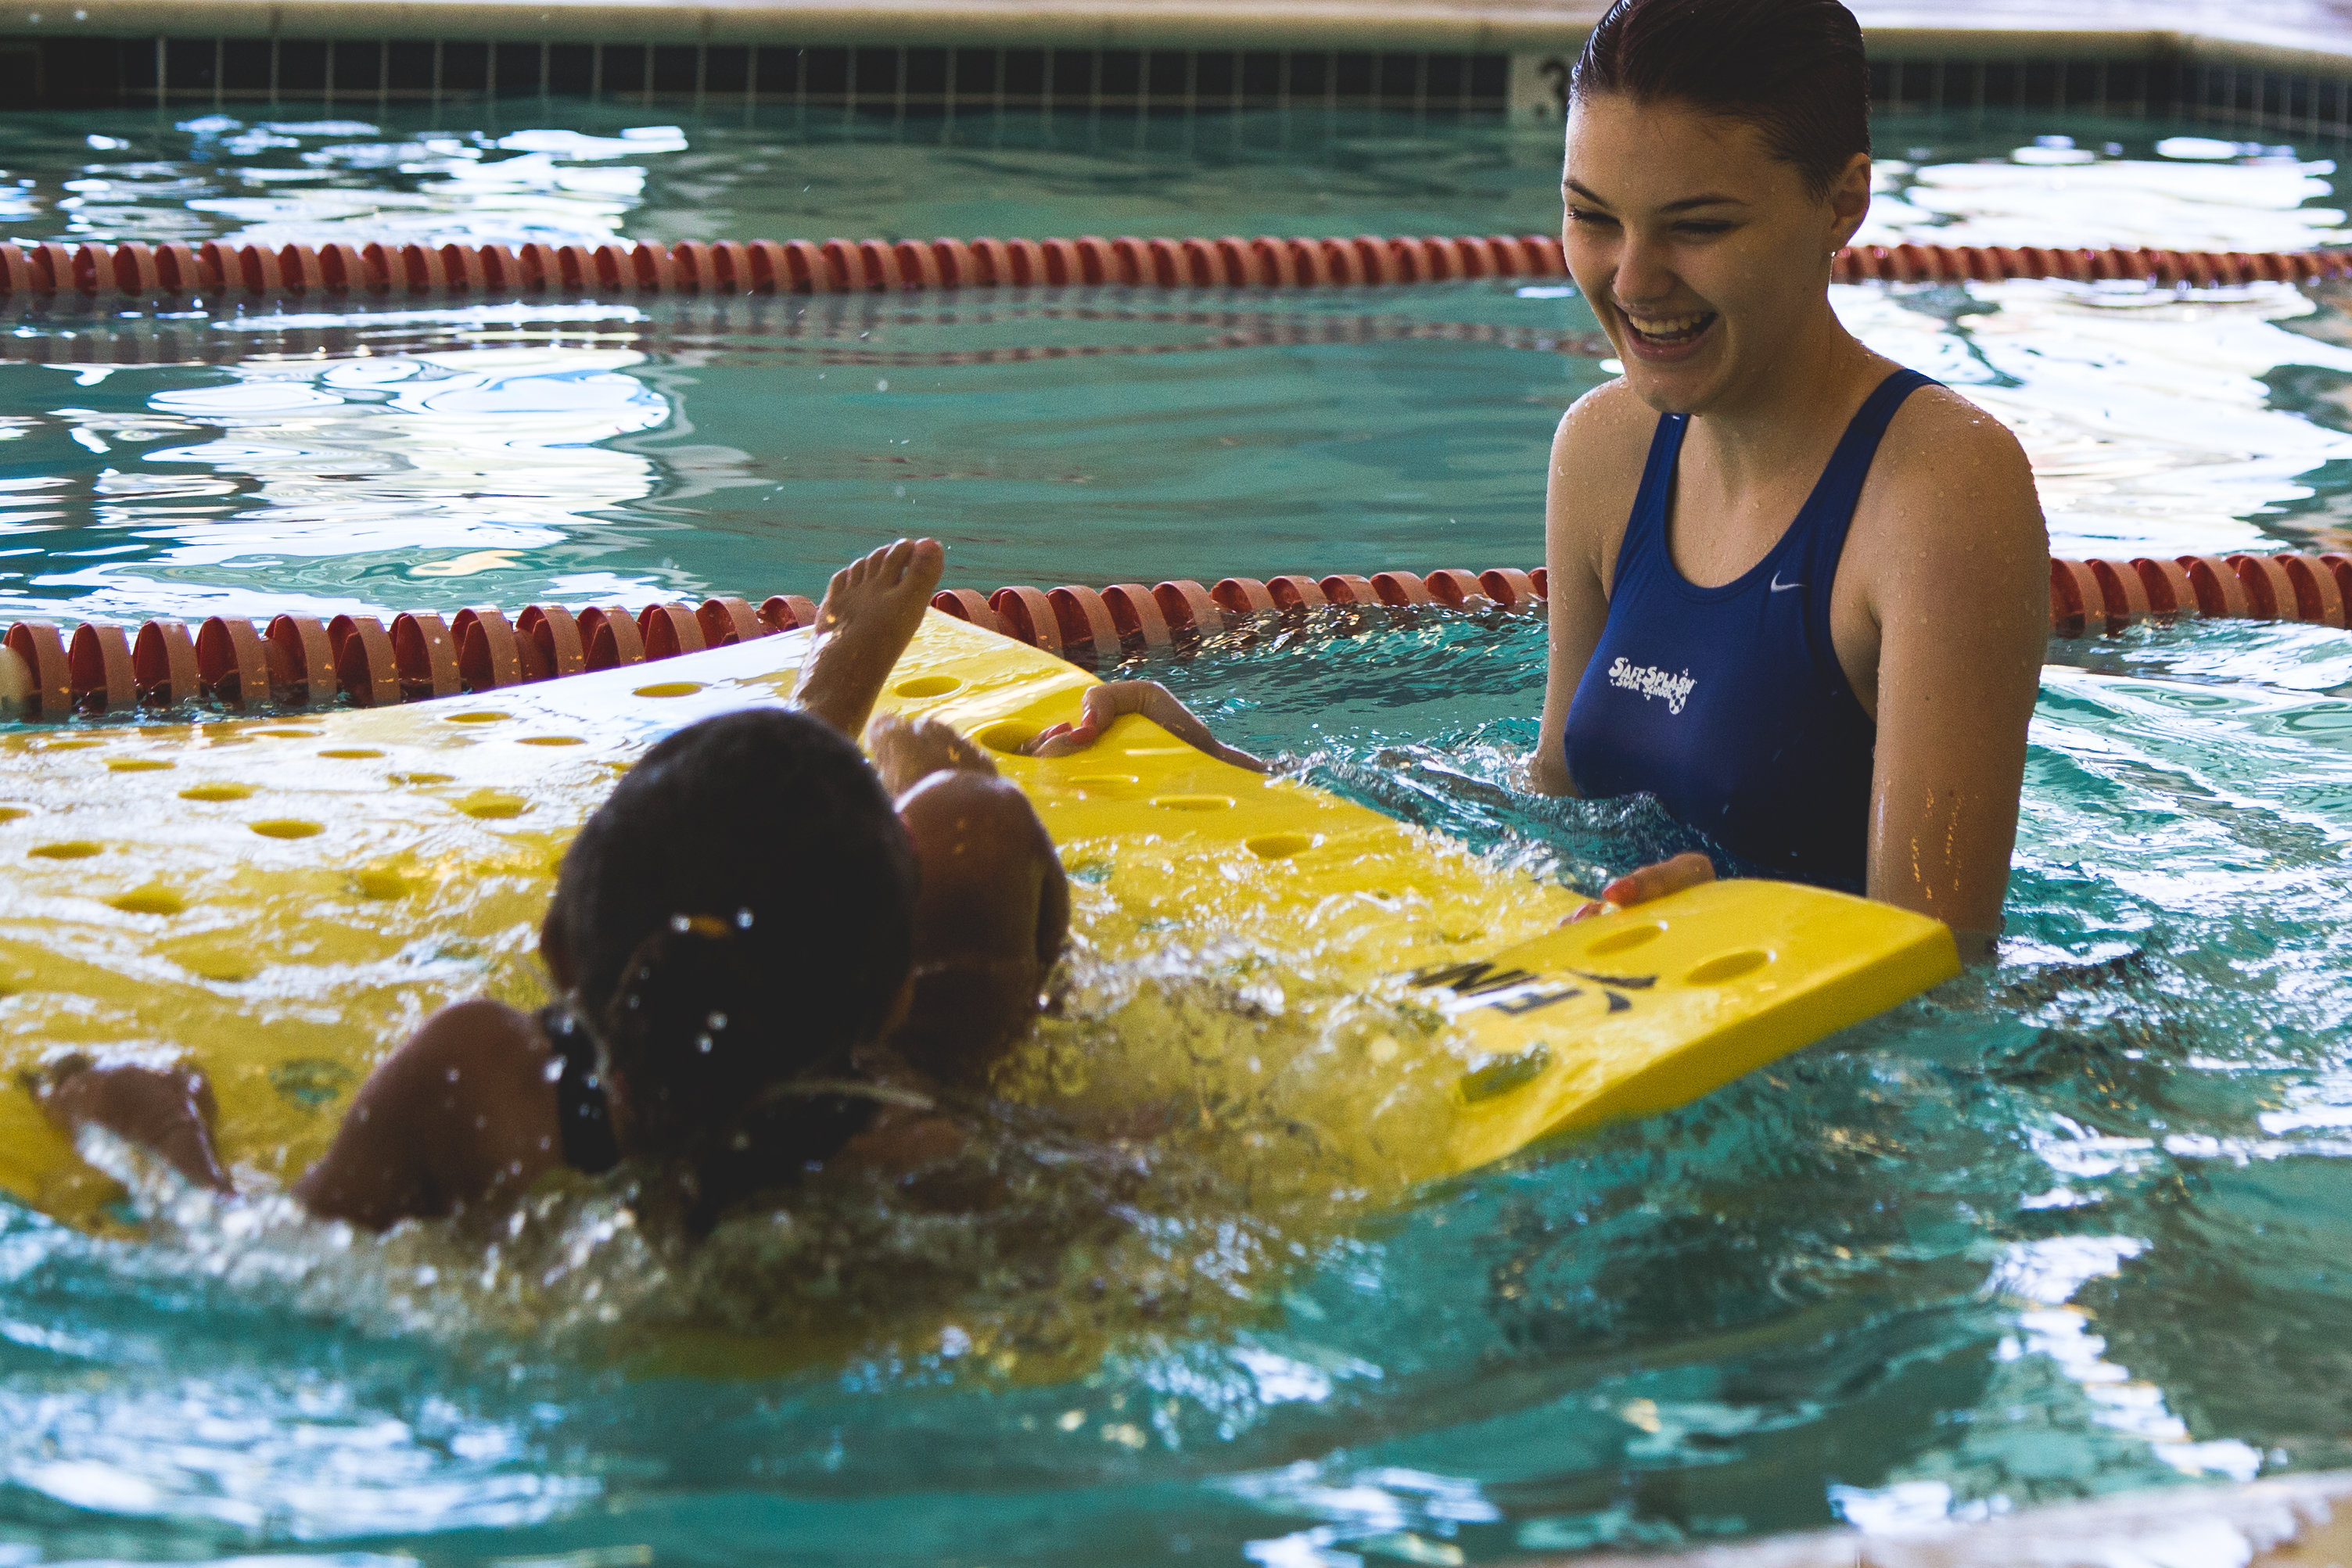 Best Swim Lessons For Kids In Pflugerville Tx Pflugerville Swim School